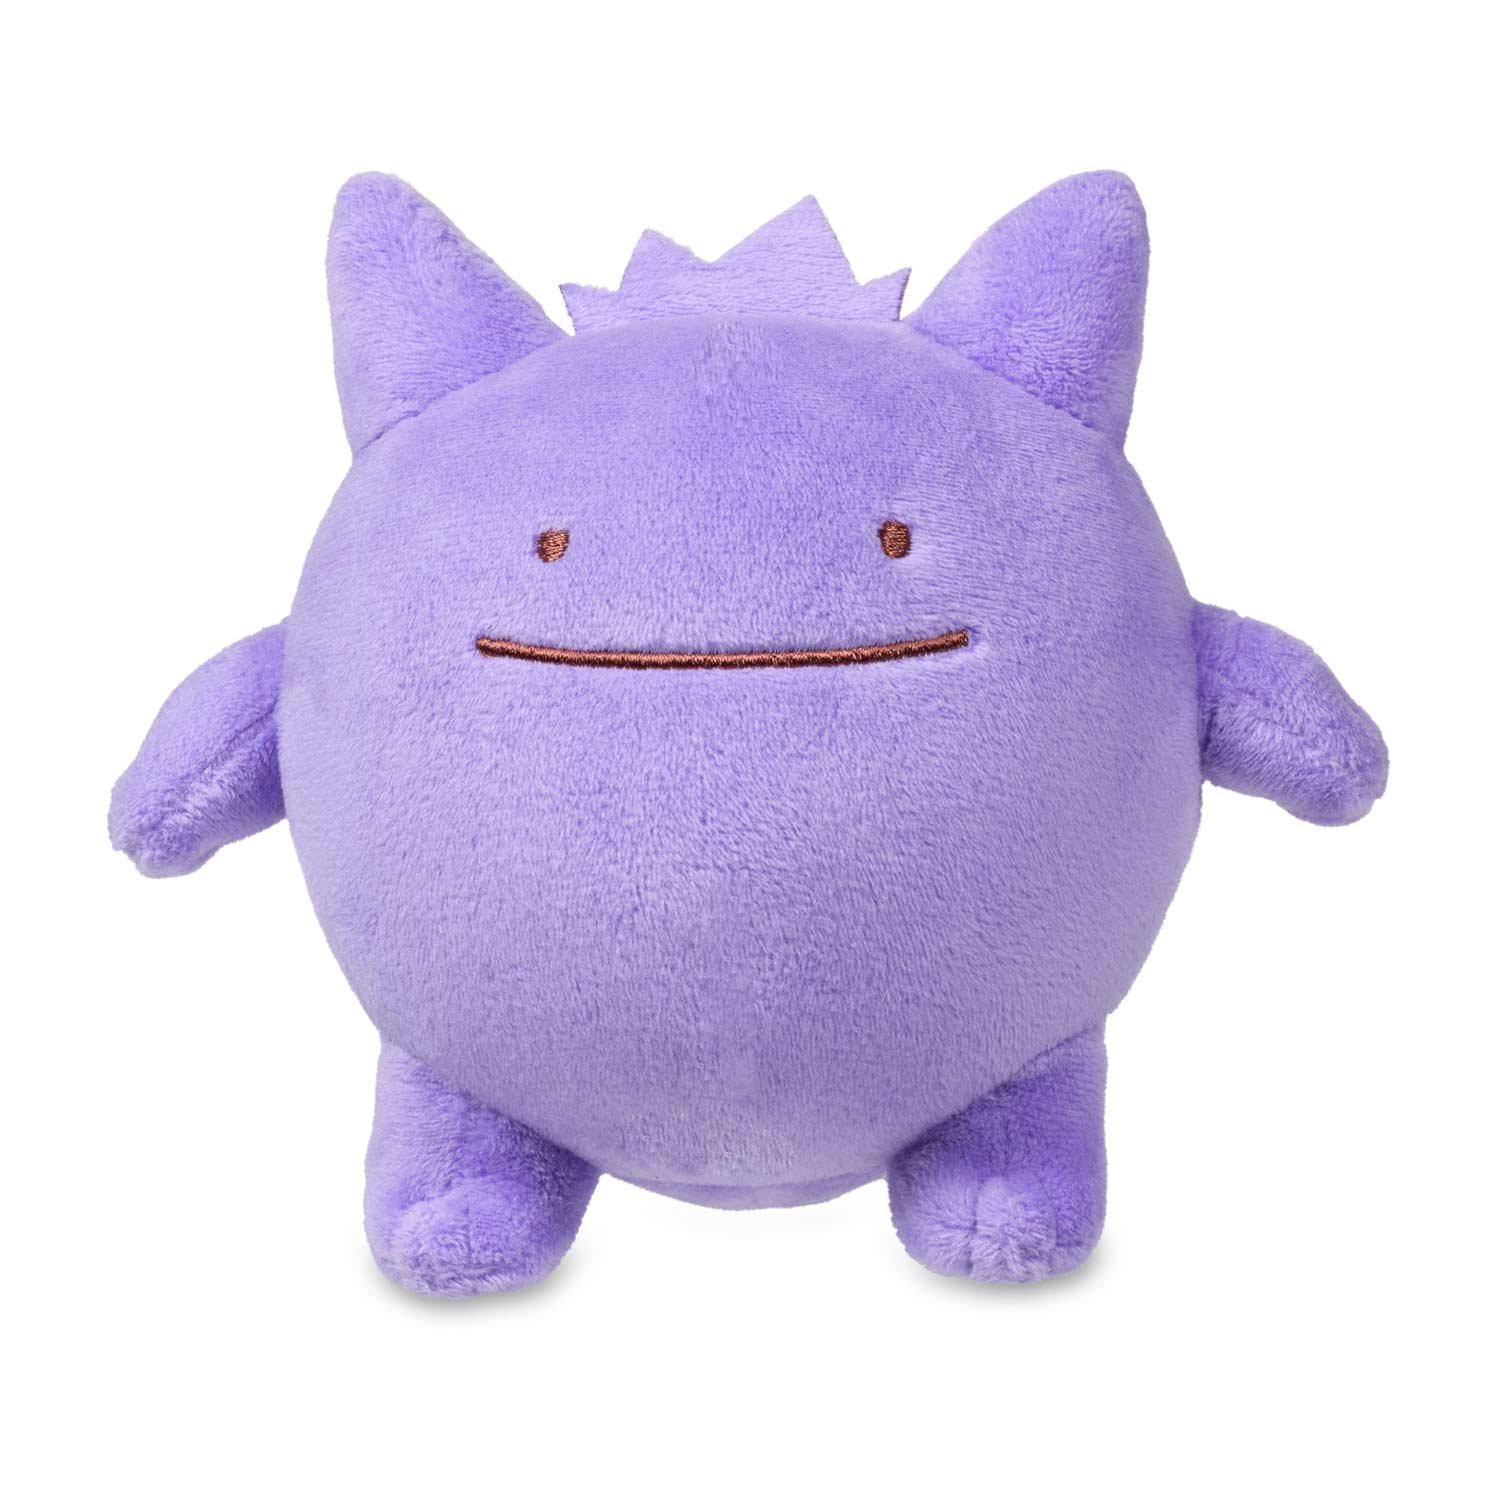 067453f7e75 Image for Ditto as Gengar Poké Plush (Standard Size) - 7 In. from